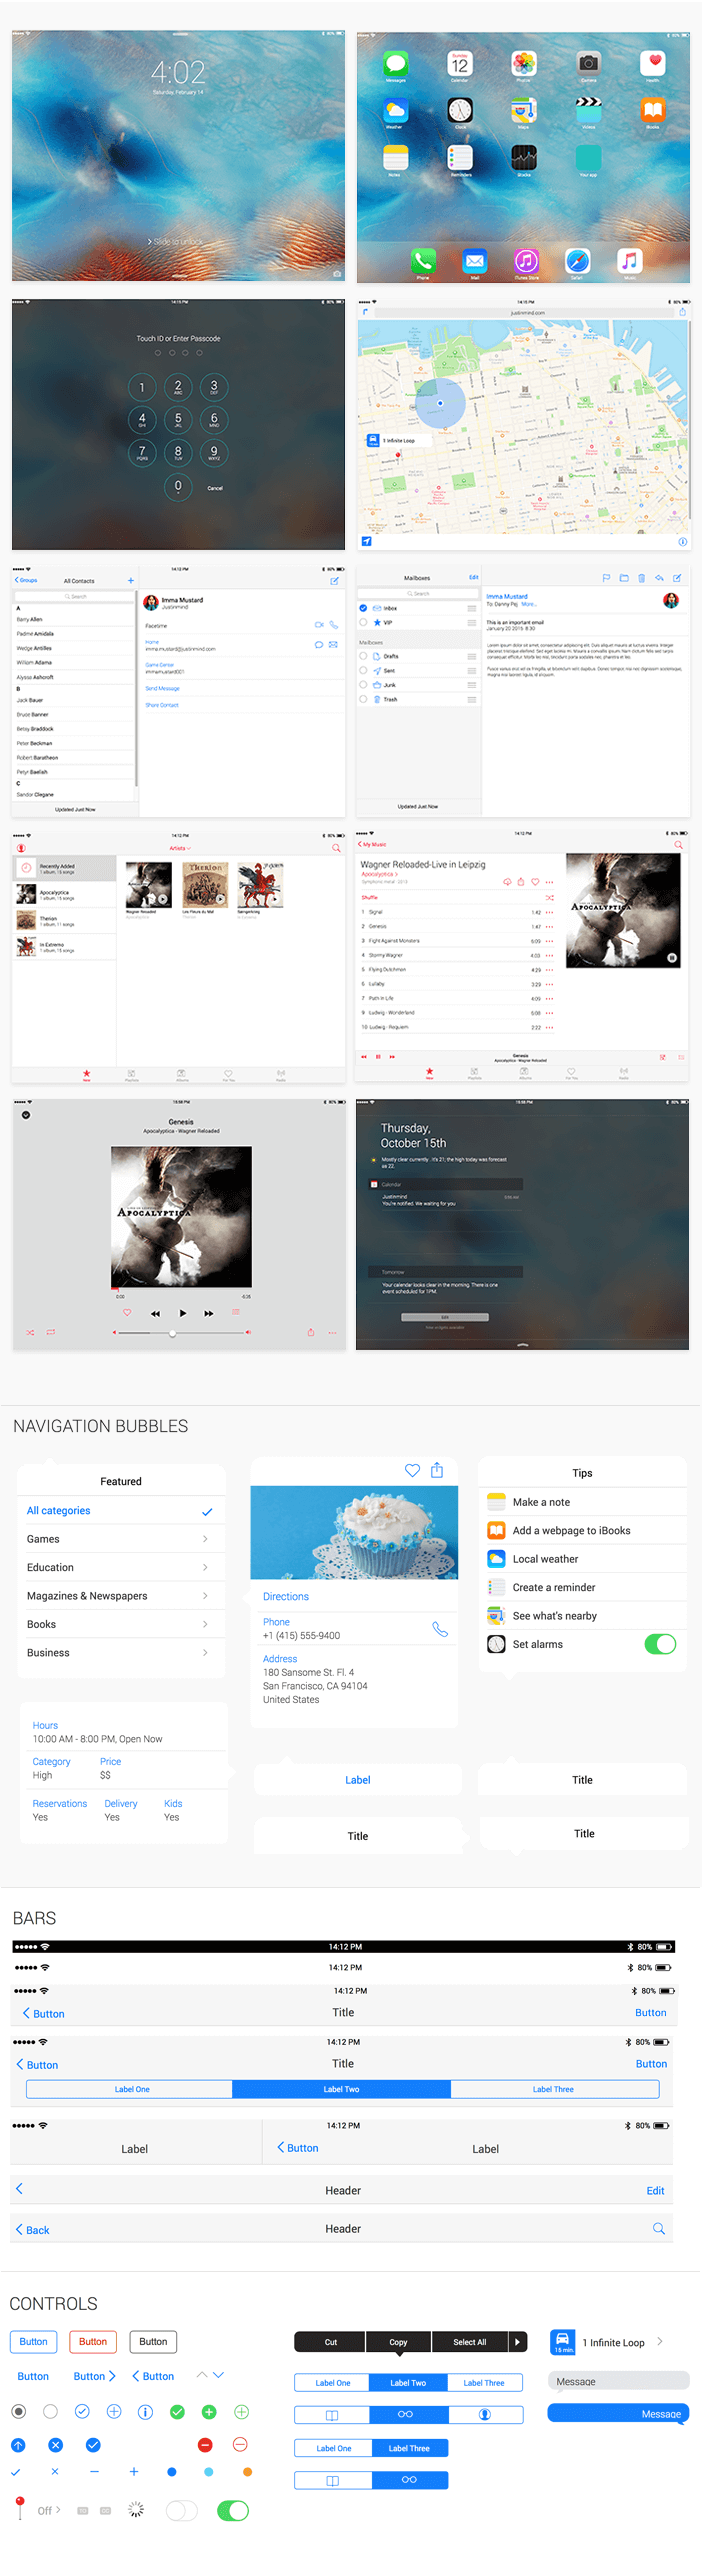 ios9-ipad-uikit-images-UI-assets